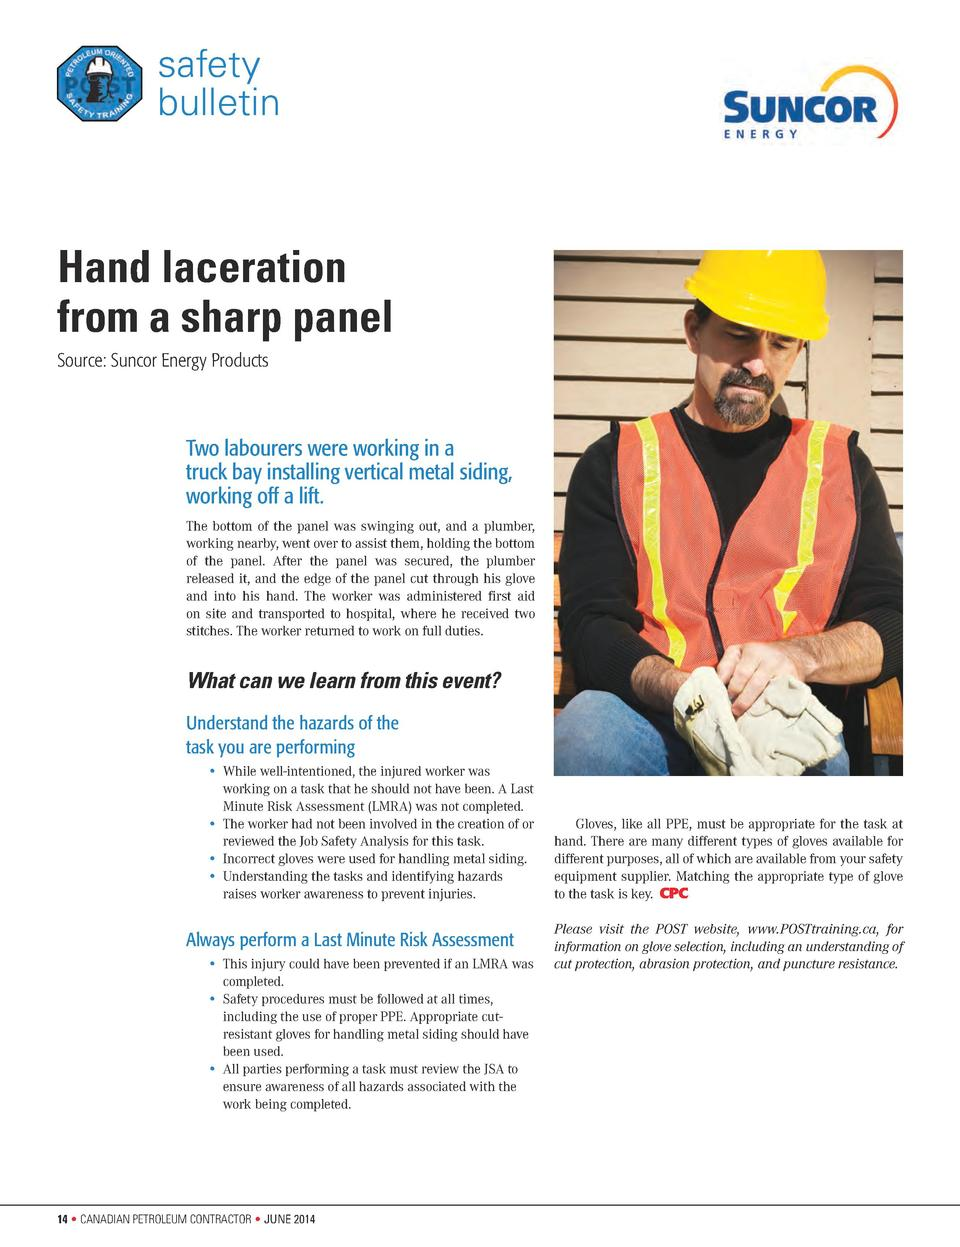 safety bulletin  Hand laceration from a sharp panel Source  Suncor Energy Products  Two labourers were working in a truck ...